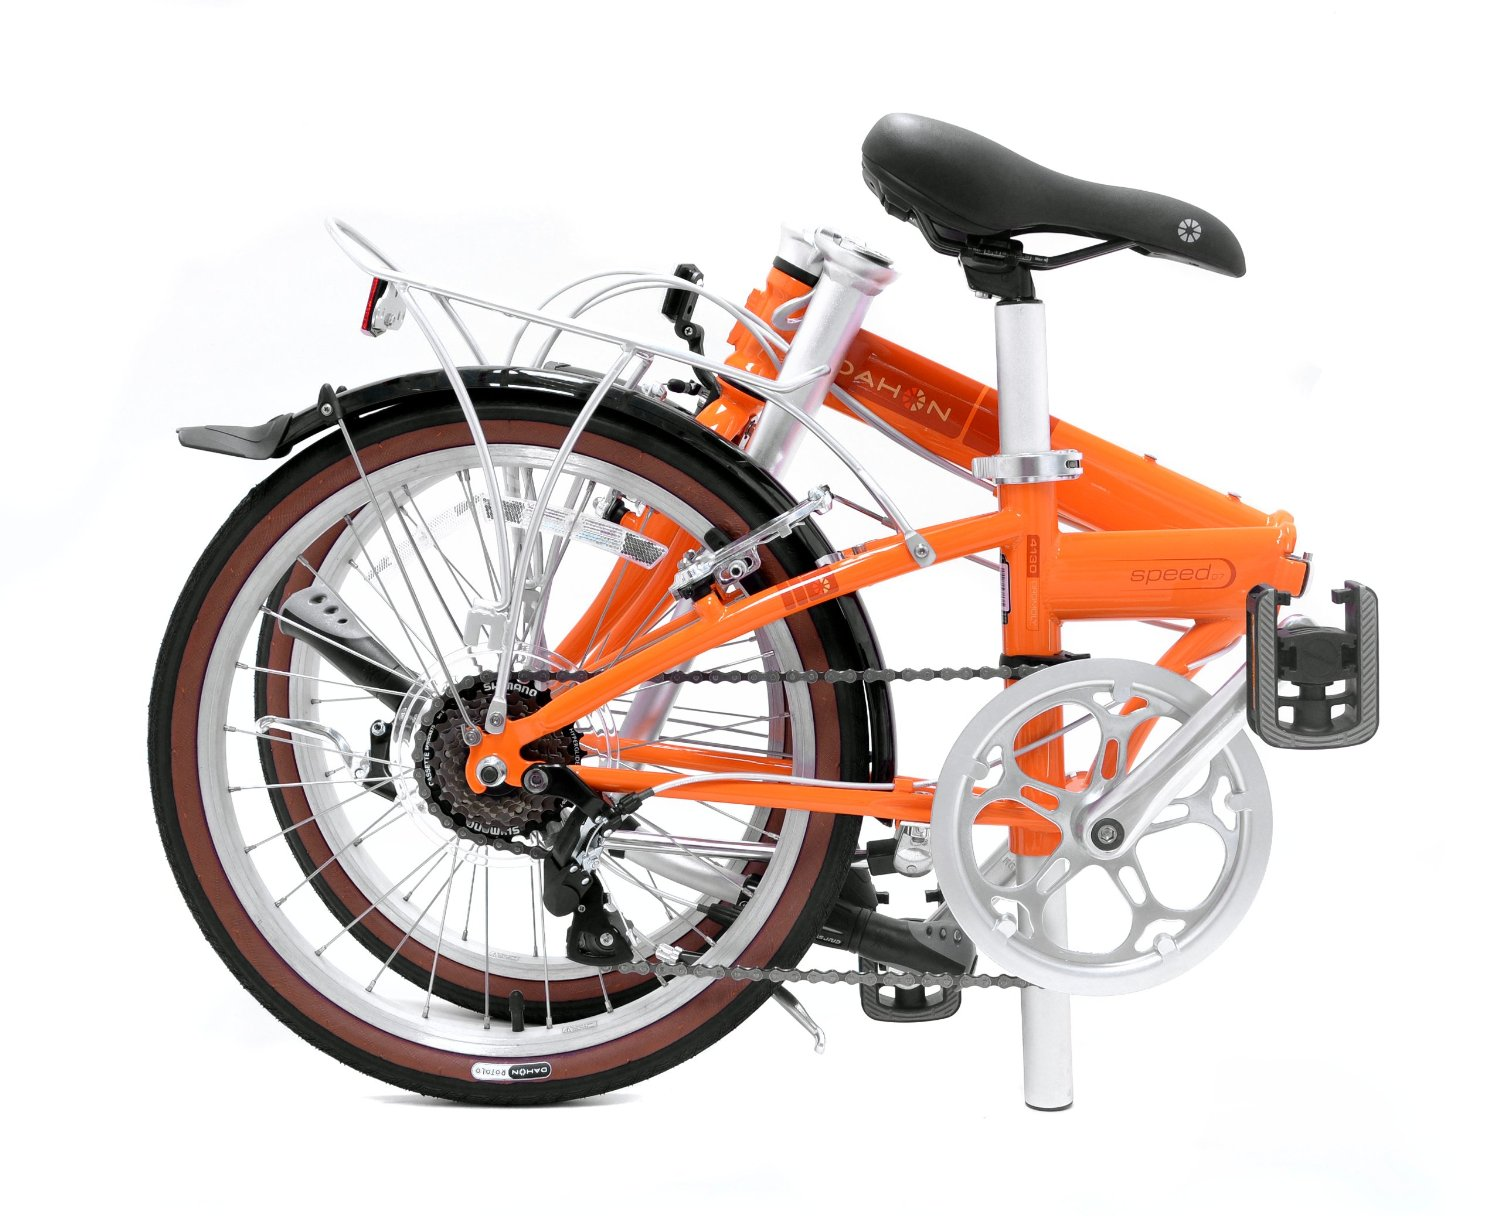 Dahon Speed D7 Folding Bike Review - An Easy, Compact and High ...